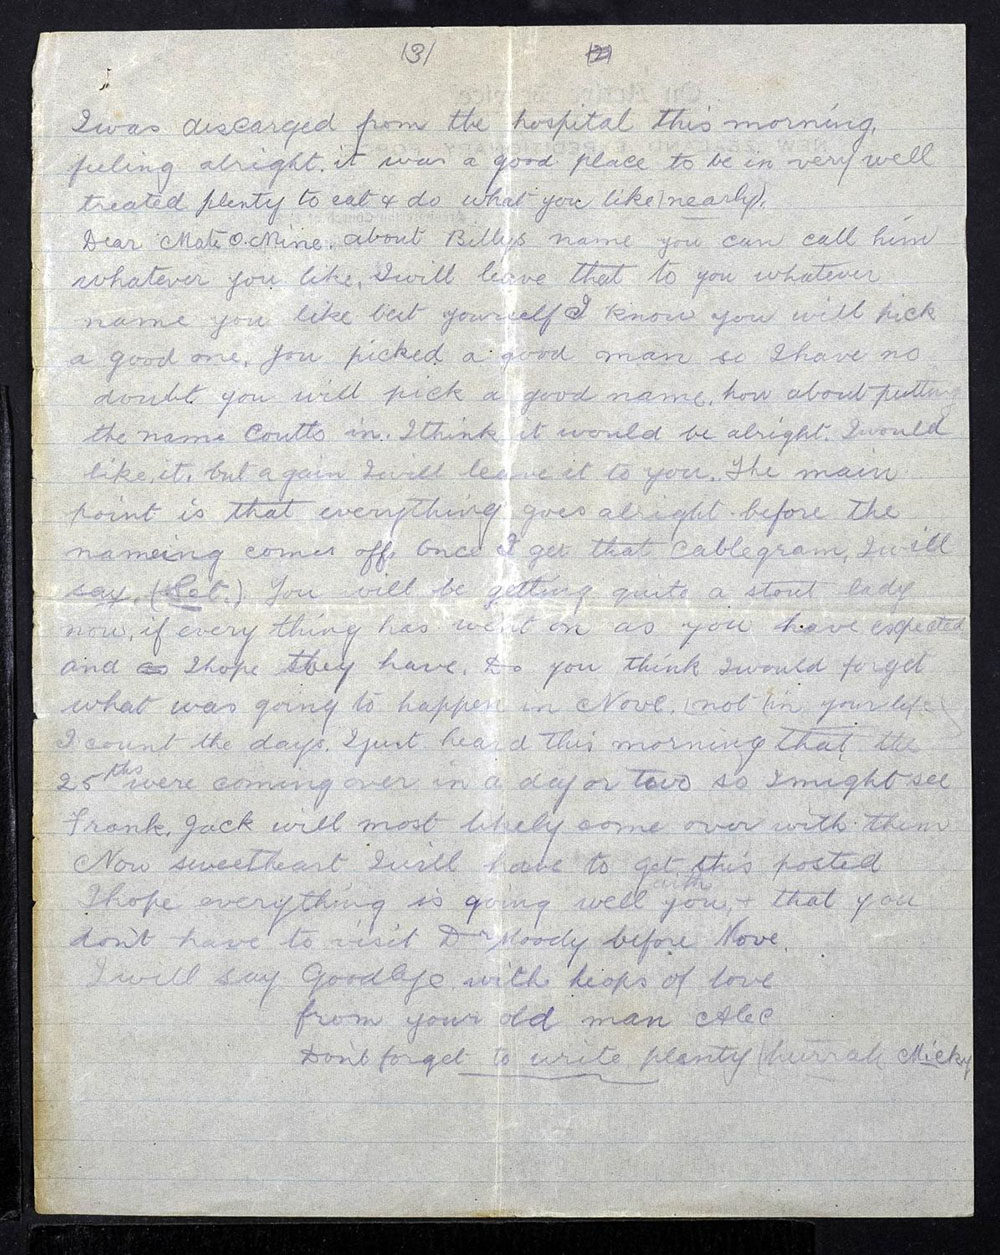 Alexander Mee's letters to Jessie - 8 August 1917 - Page 3